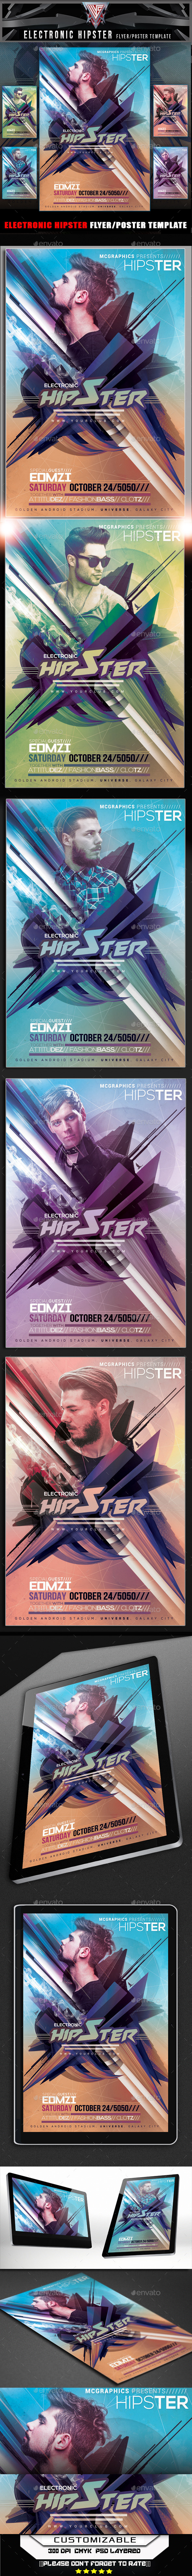 Electronic Hipster Flyer Template